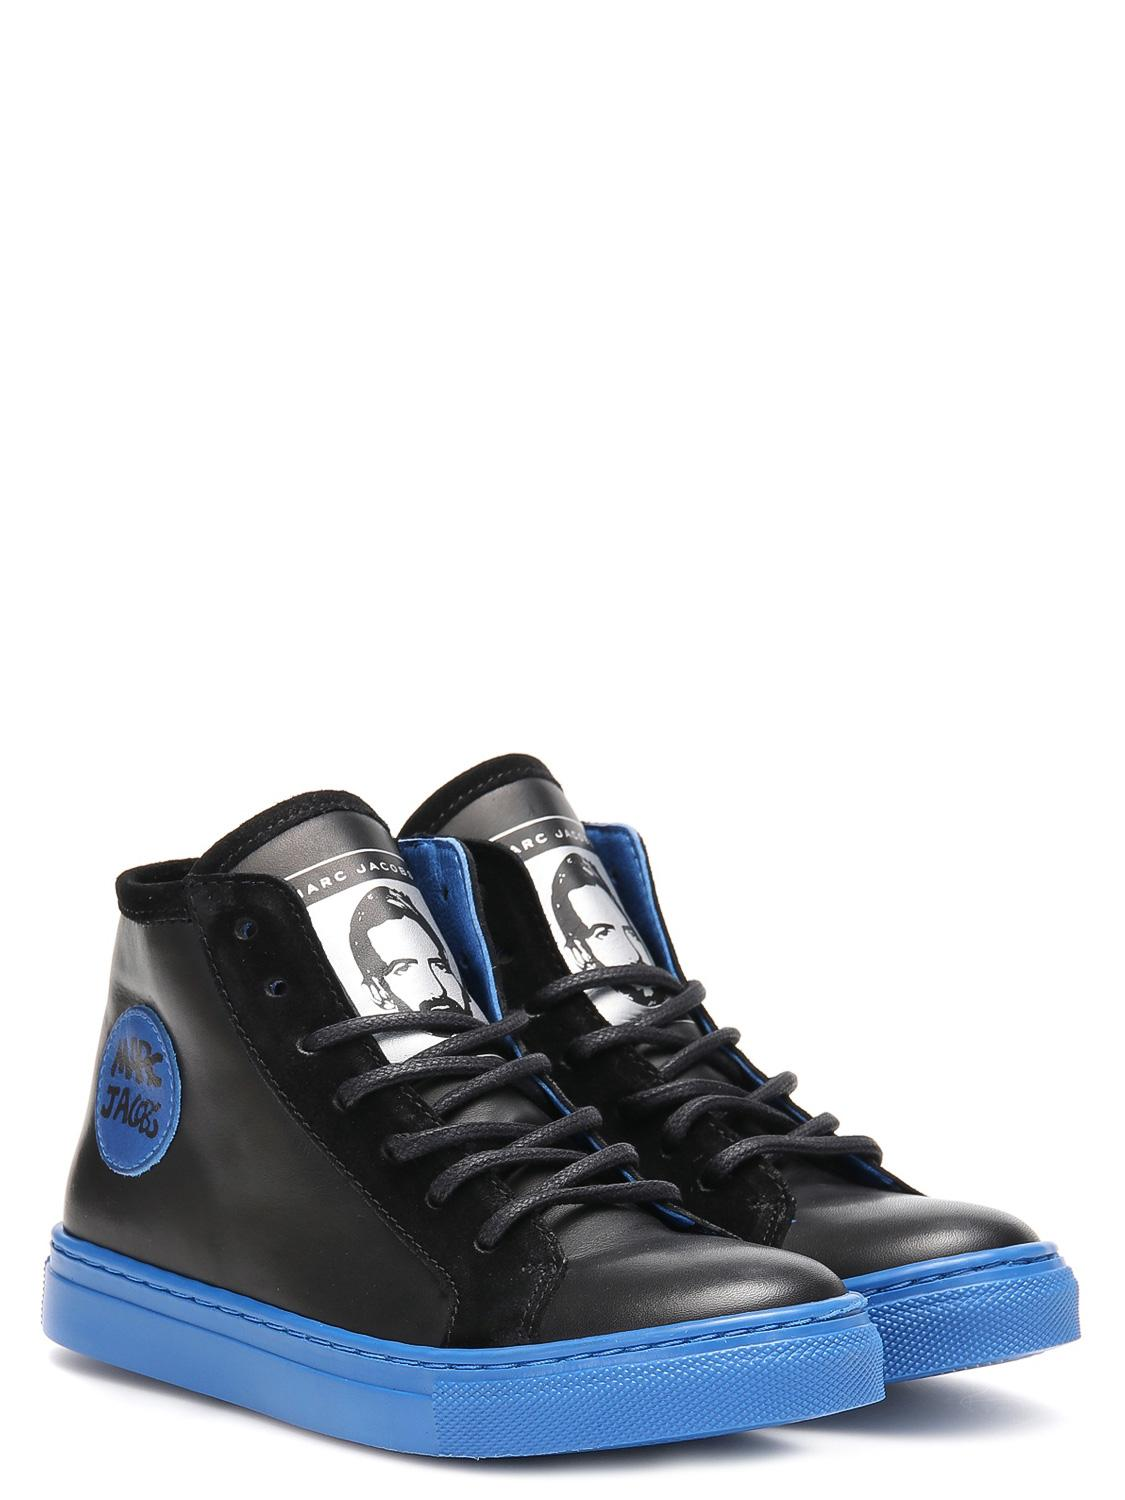 LITTLE MARC JACOBS sneakers black for